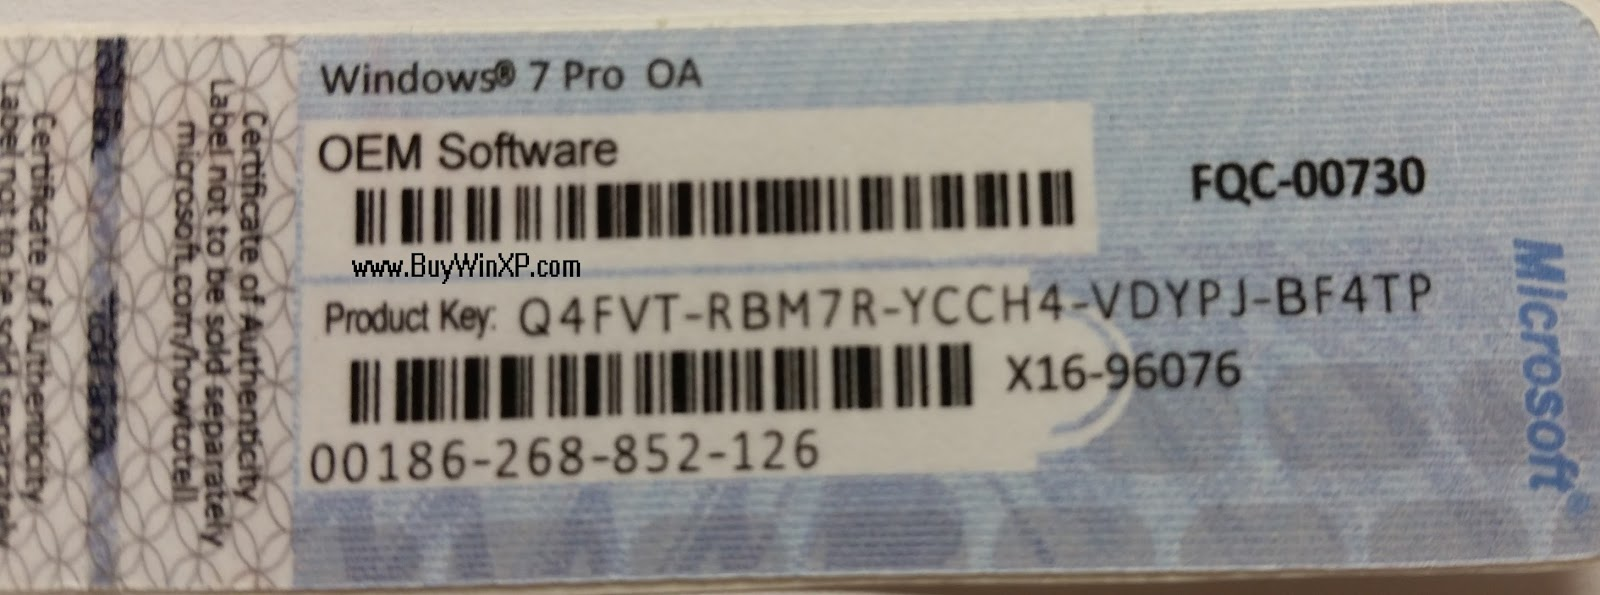 Win7 64 Product Key For Iso Download - keywordsre's diary